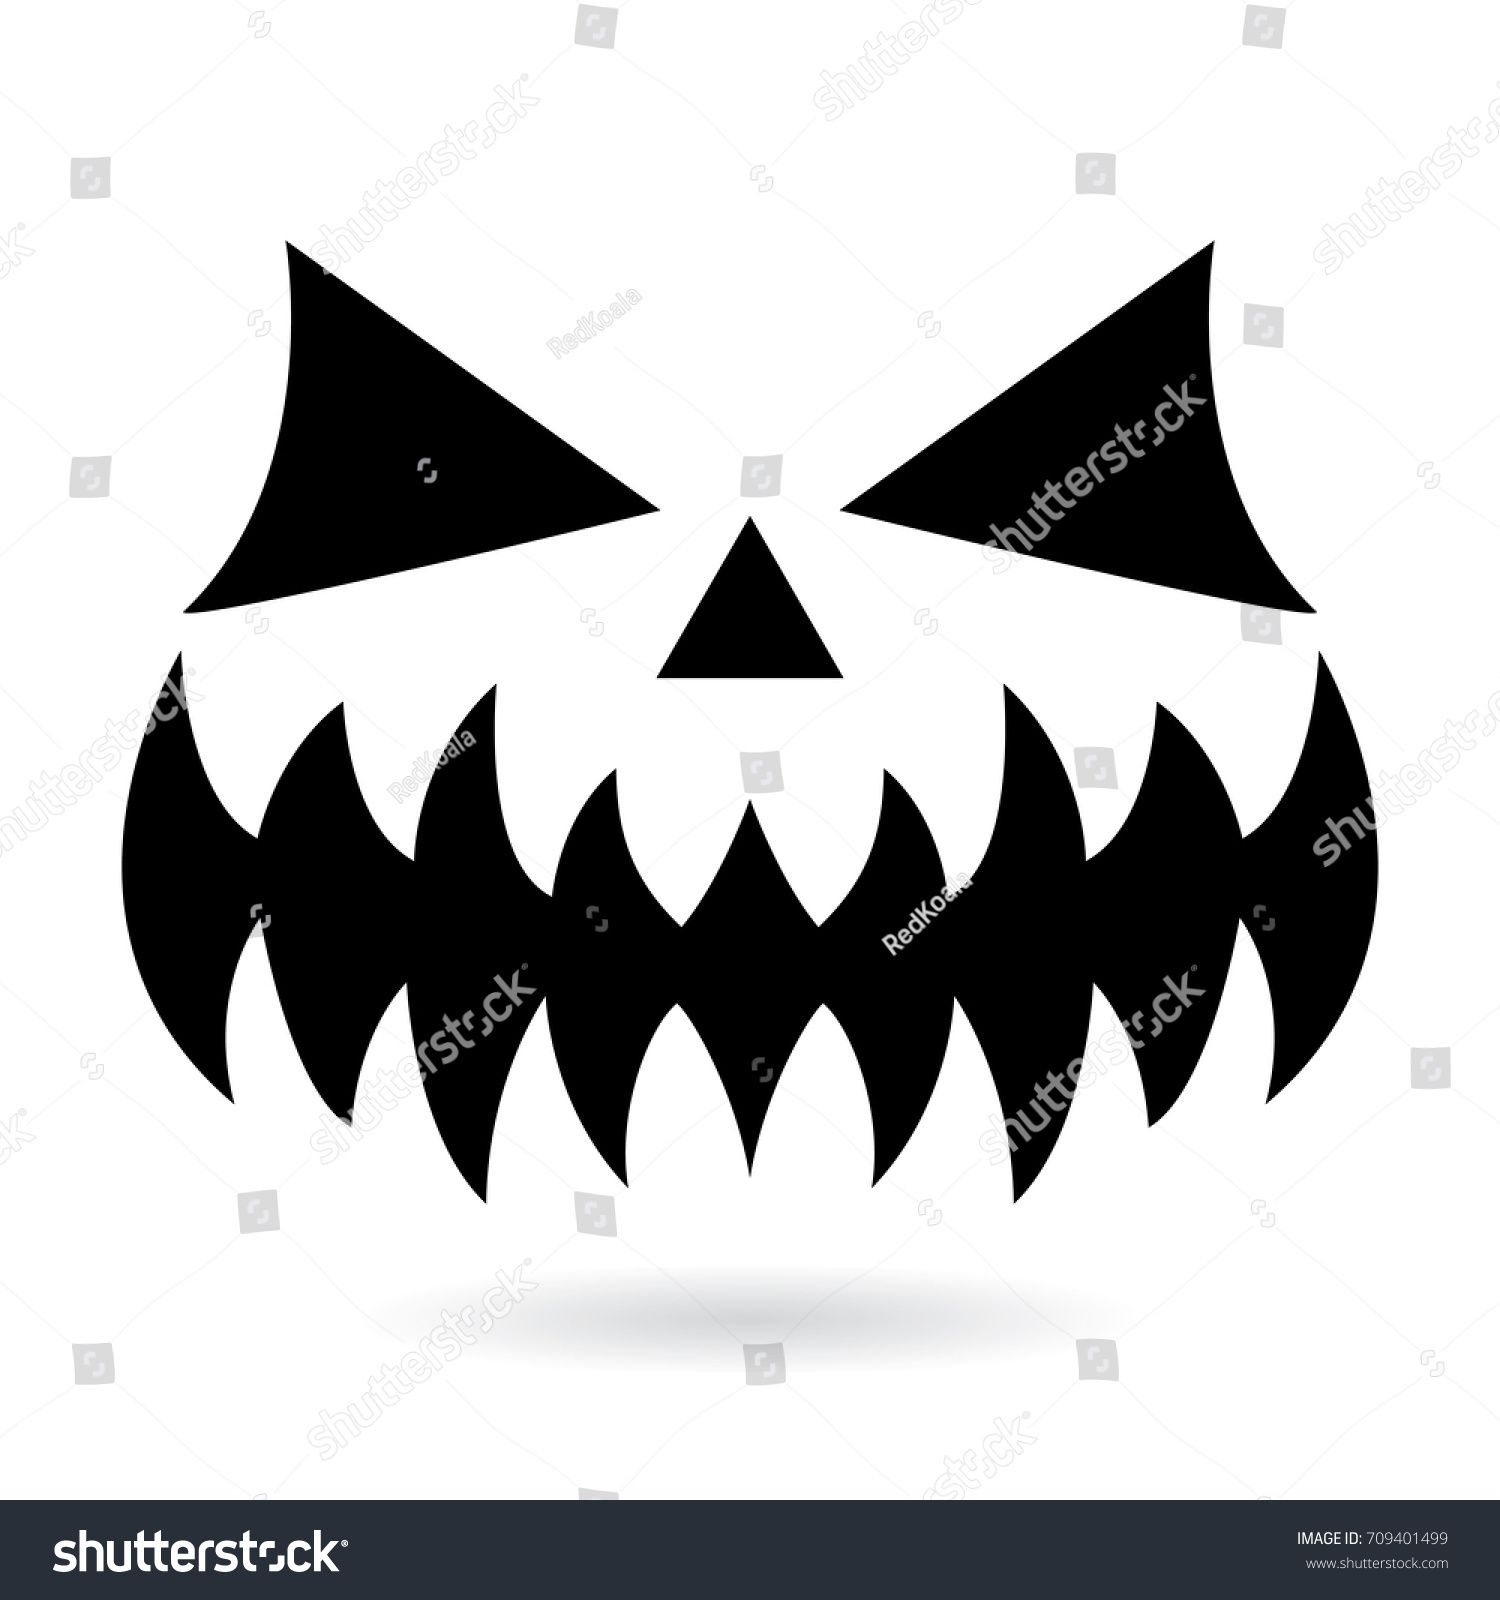 This scary human skull silhouette wall sticker will add a